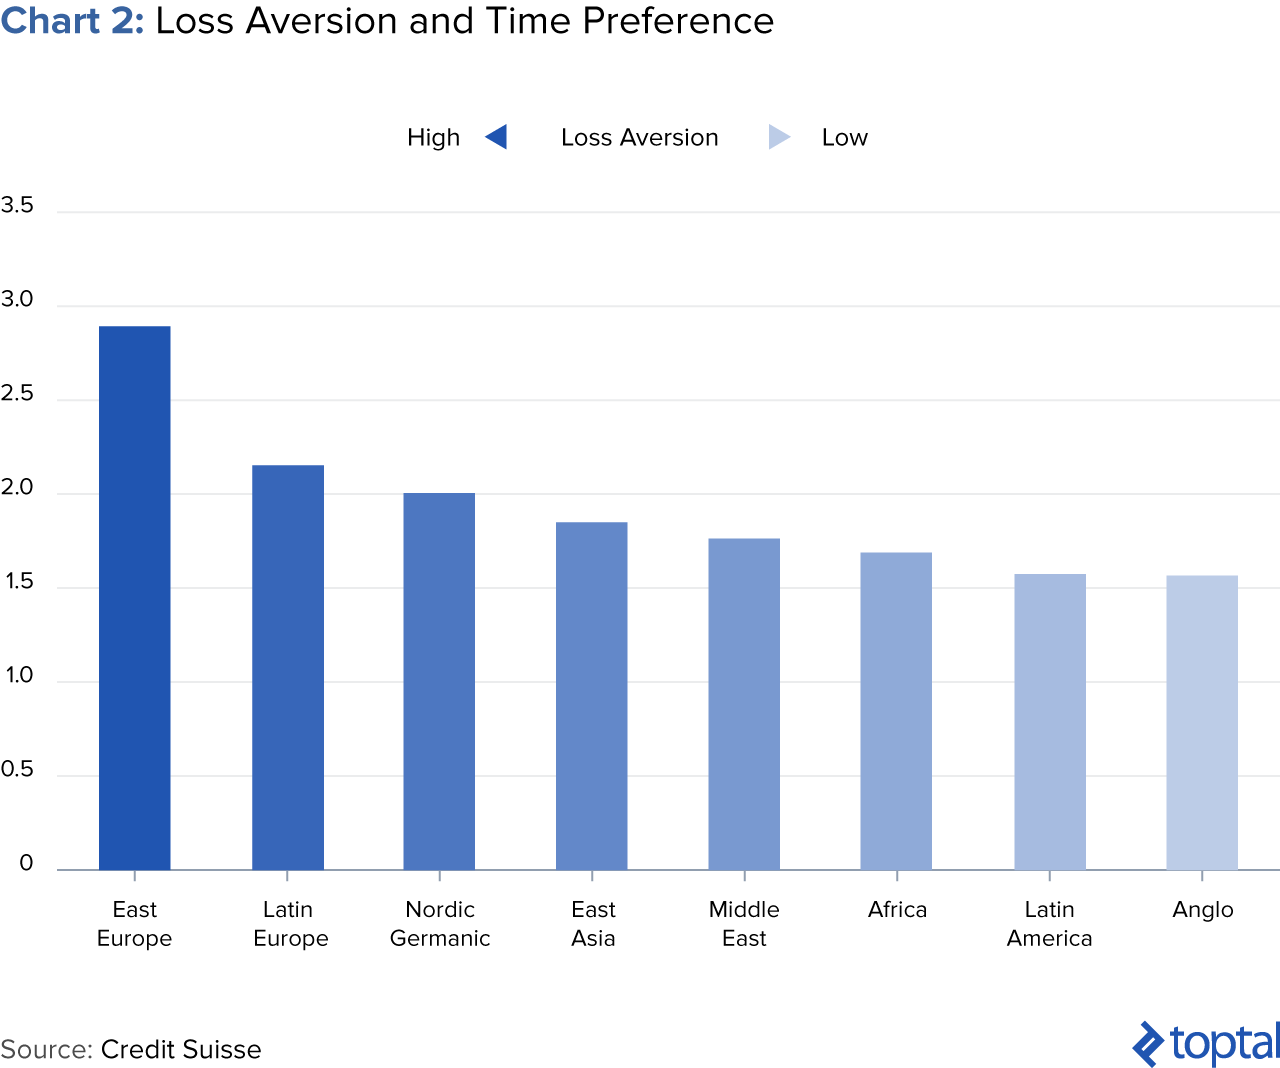 Chart 2: Loss Aversion and Time Preference